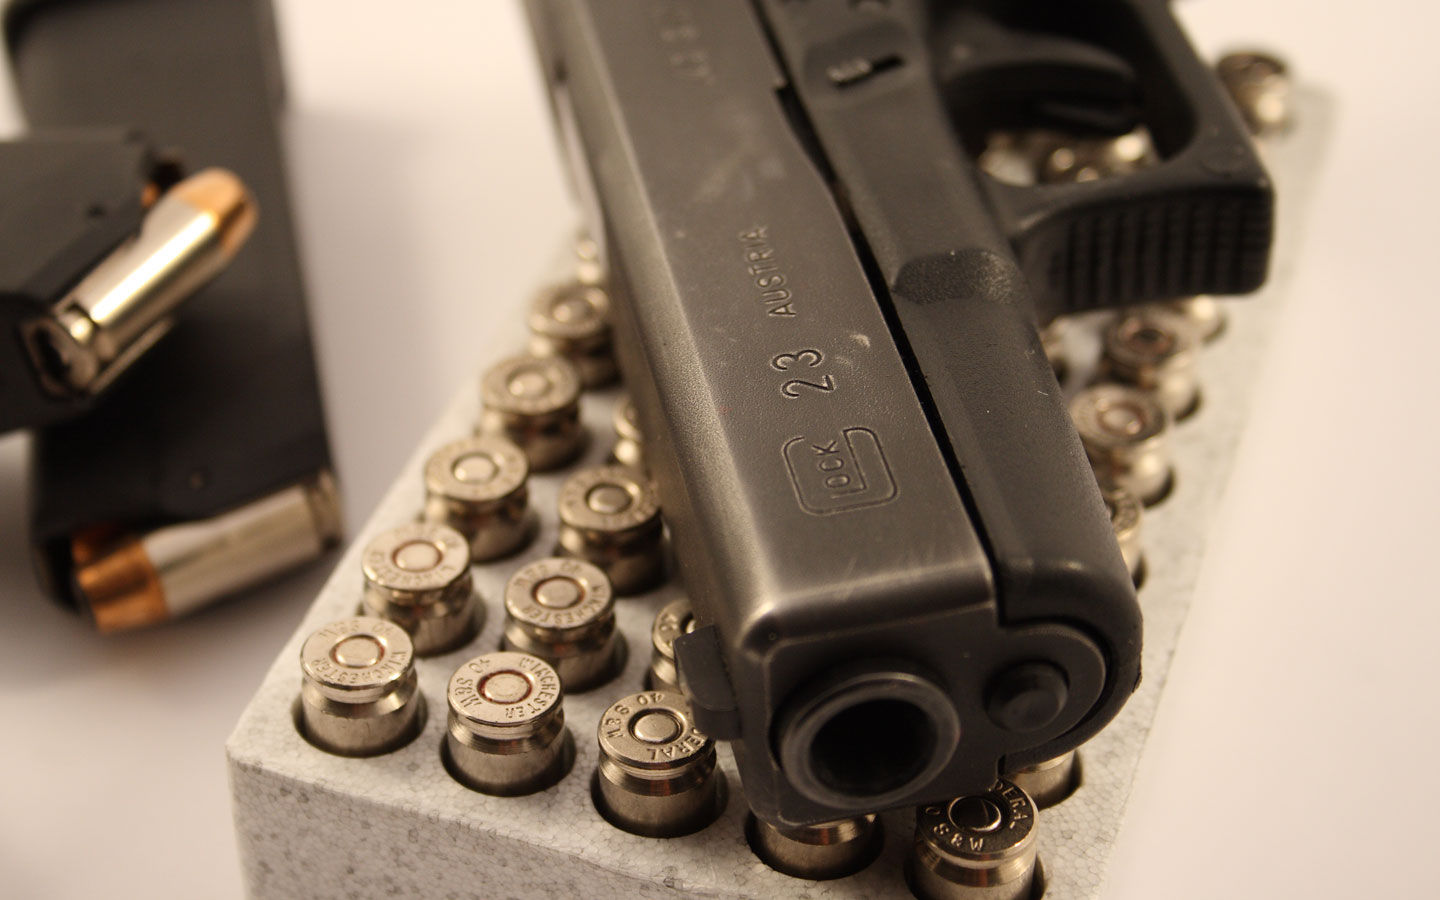 Glock Pistol HD Wallpapers | Glock Pistol Pictures | Cool Wallpapers 1310